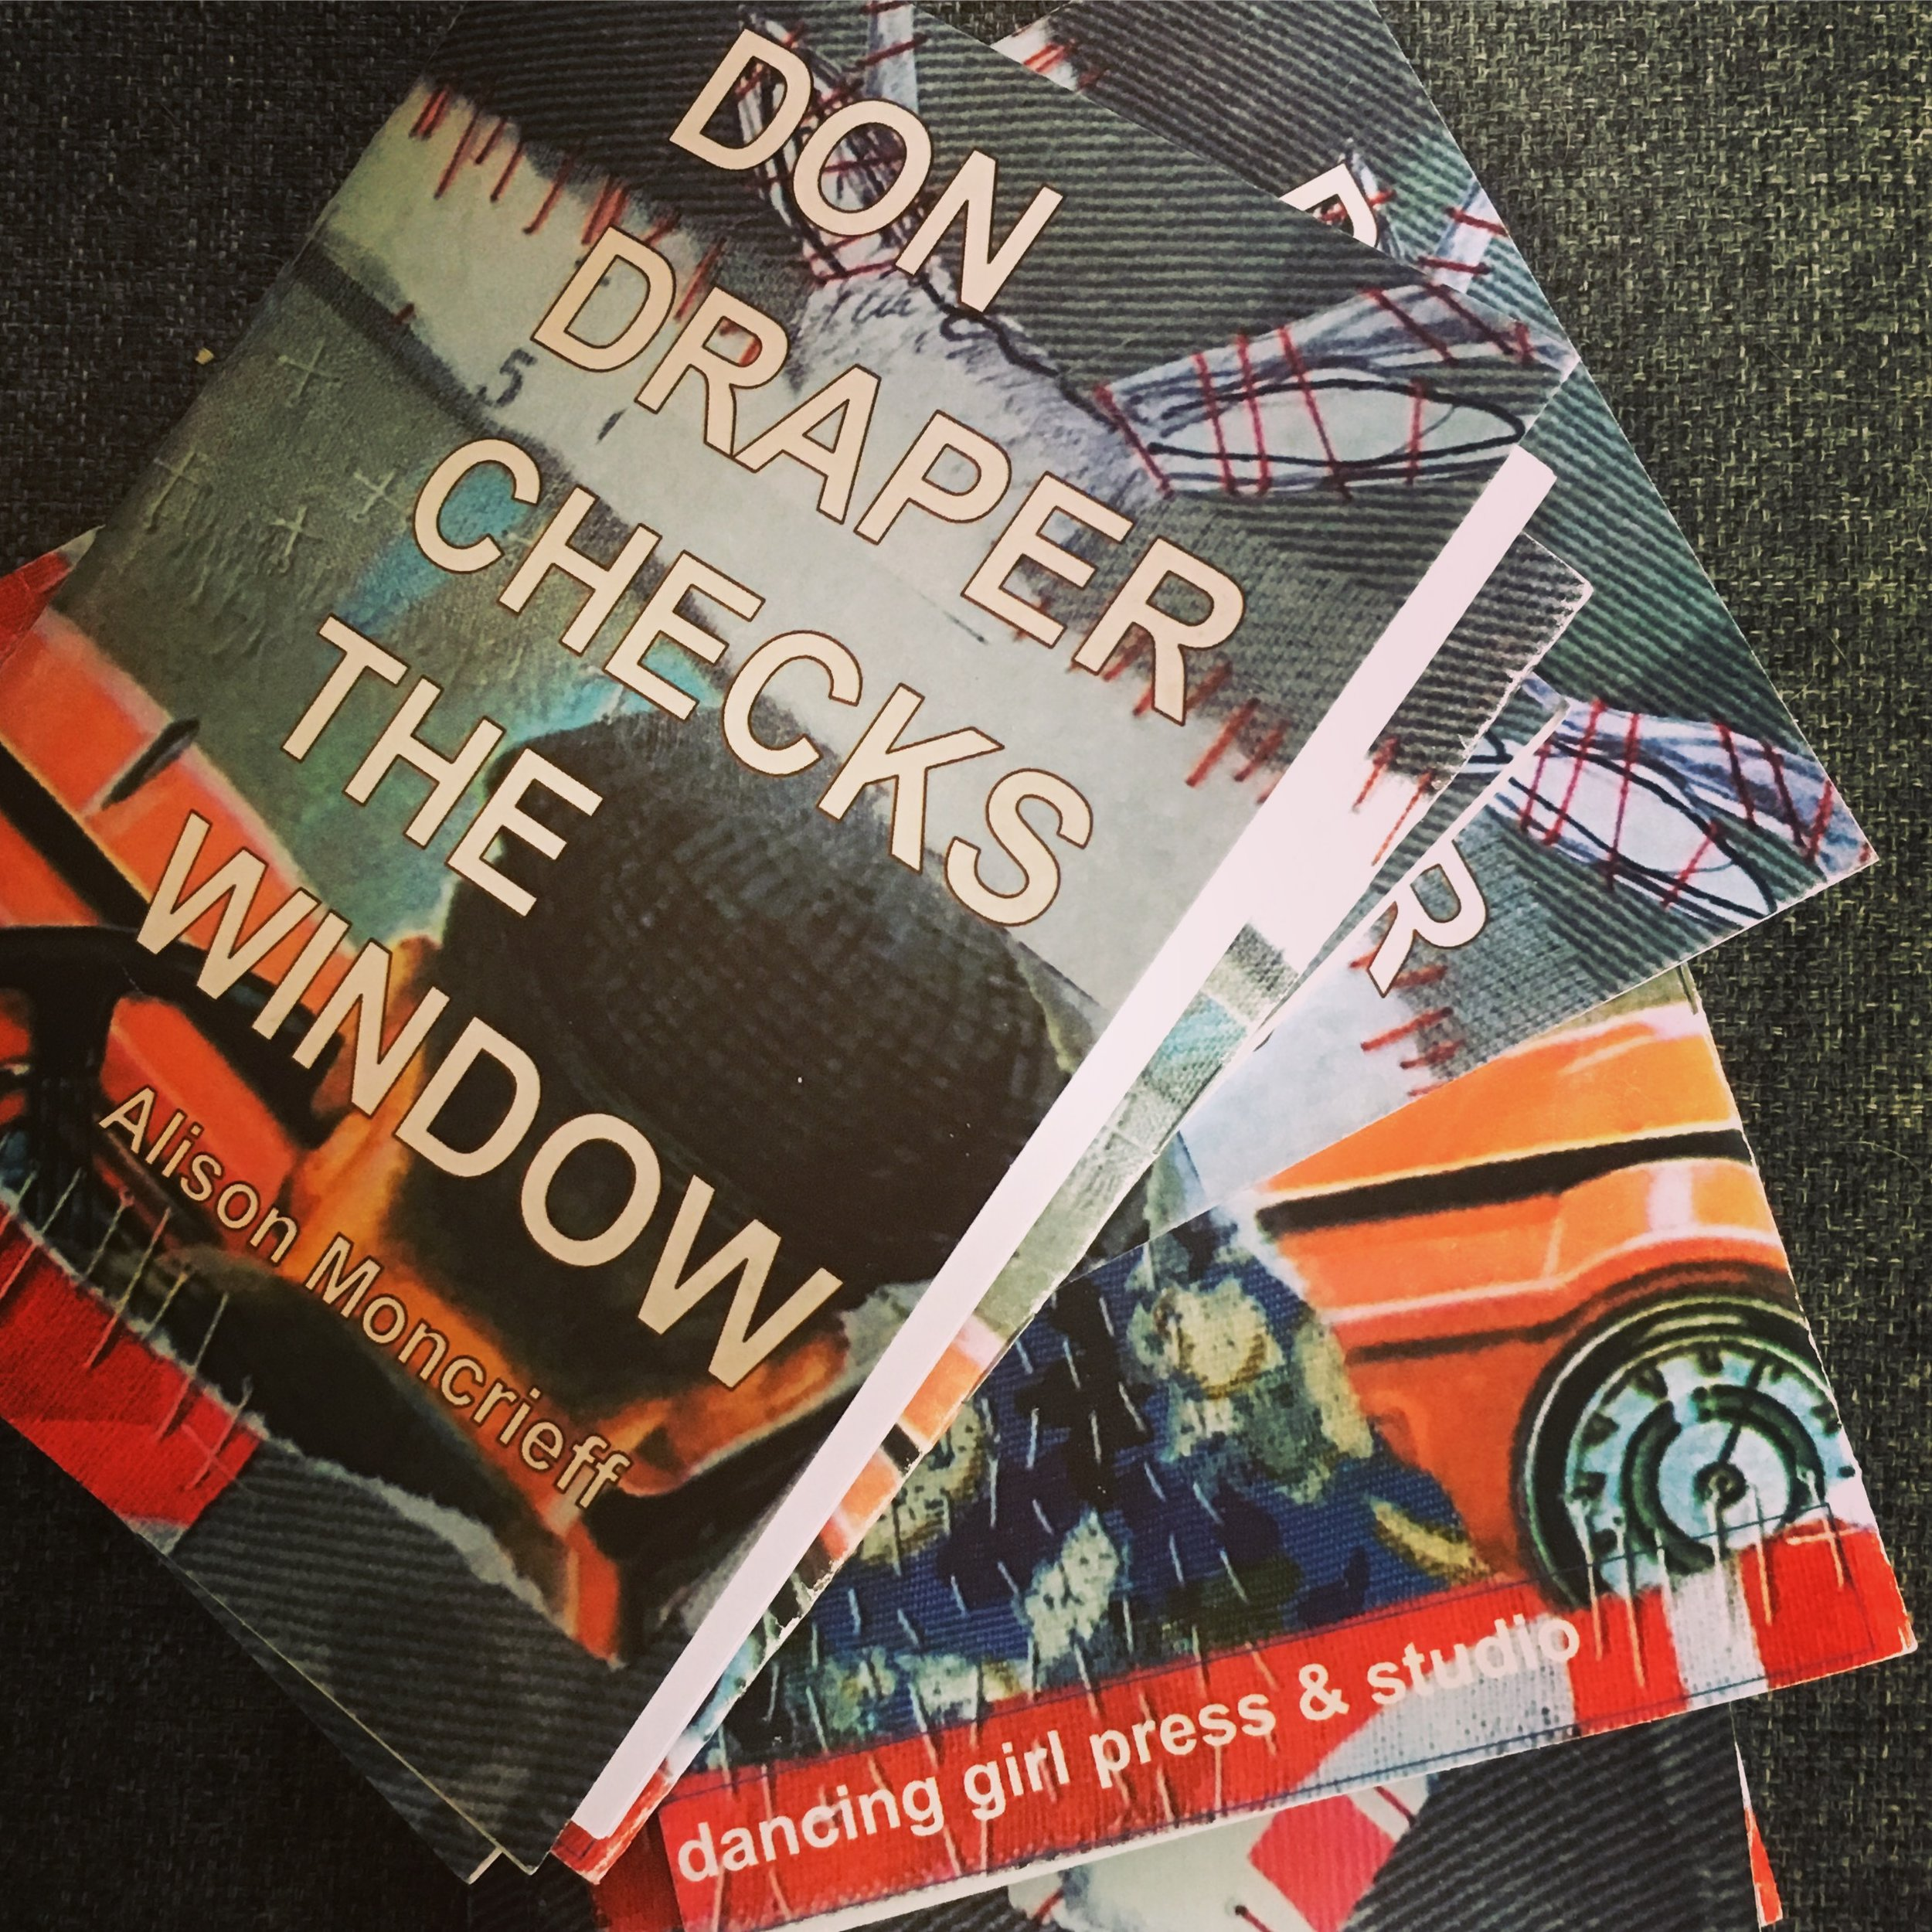 - don draper checks the window came out in September of 2017 from dancing girl press & studio. I was watching Mad Men. It started with